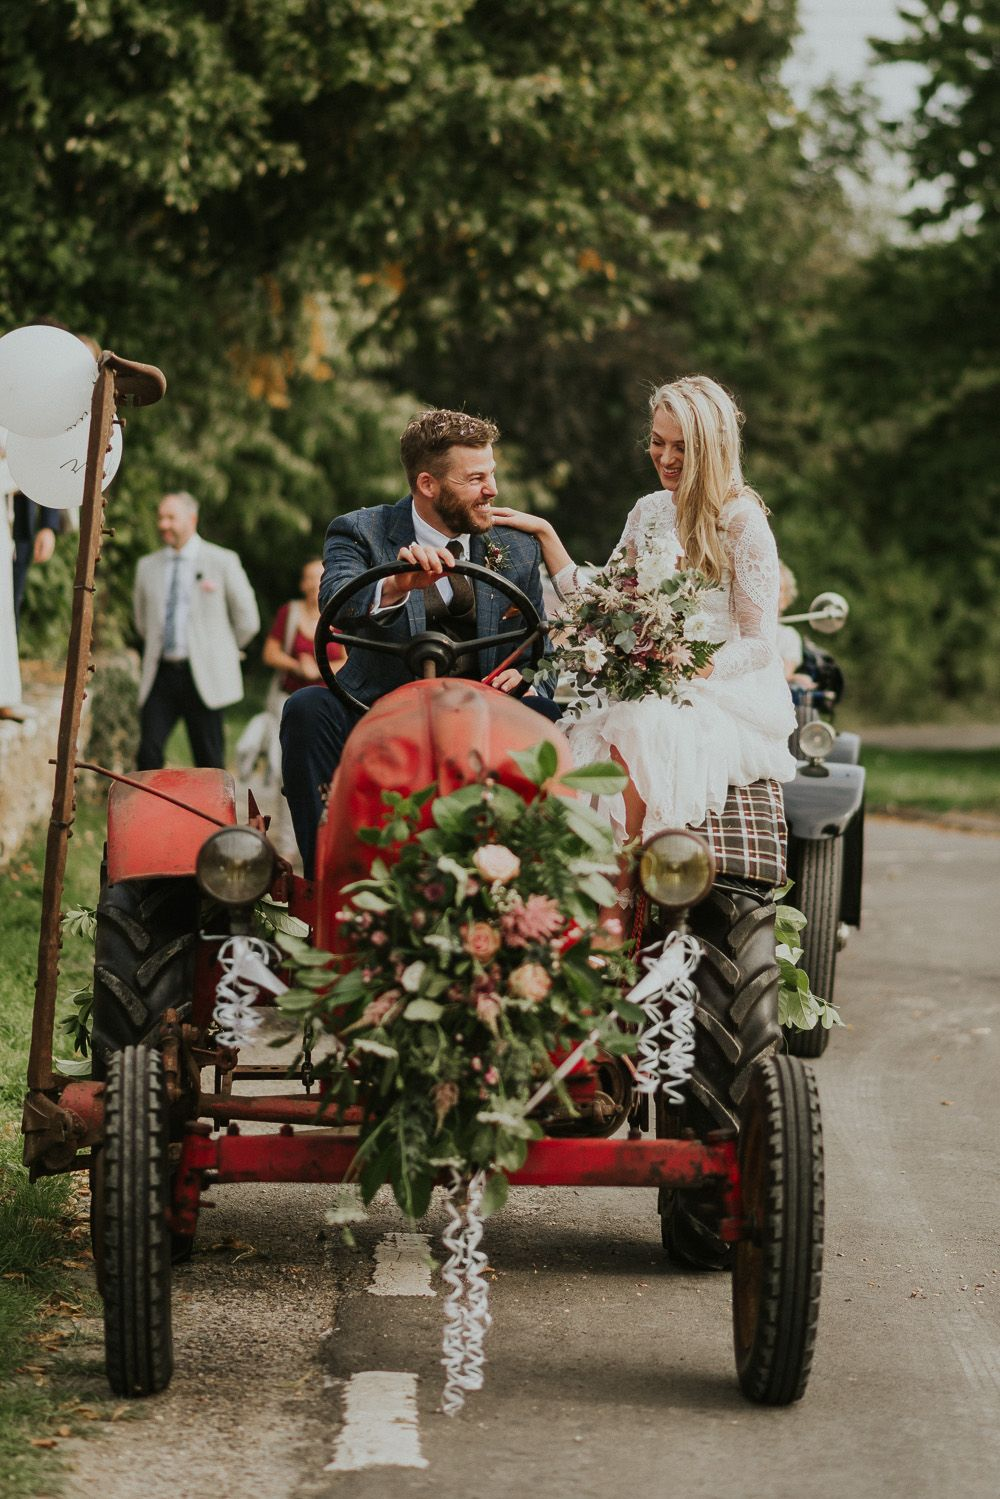 Fonkelnieuw Family Home Wedding In The Cotswolds With Vintage Porsche Tractor ZX-89